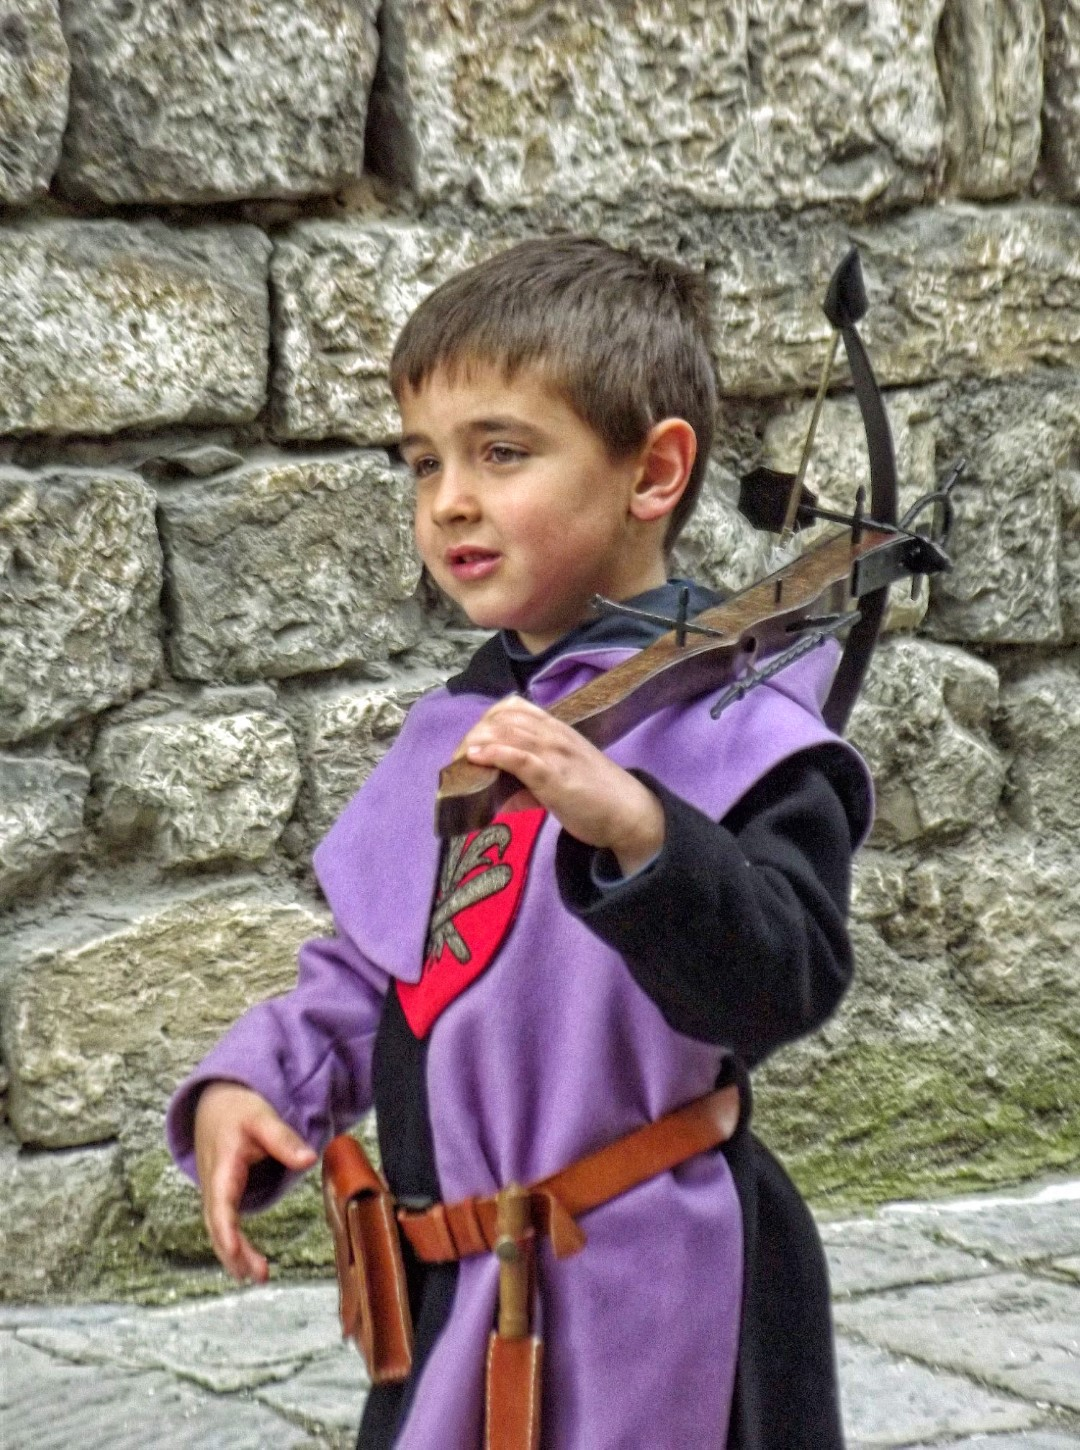 Young boy with crossbow